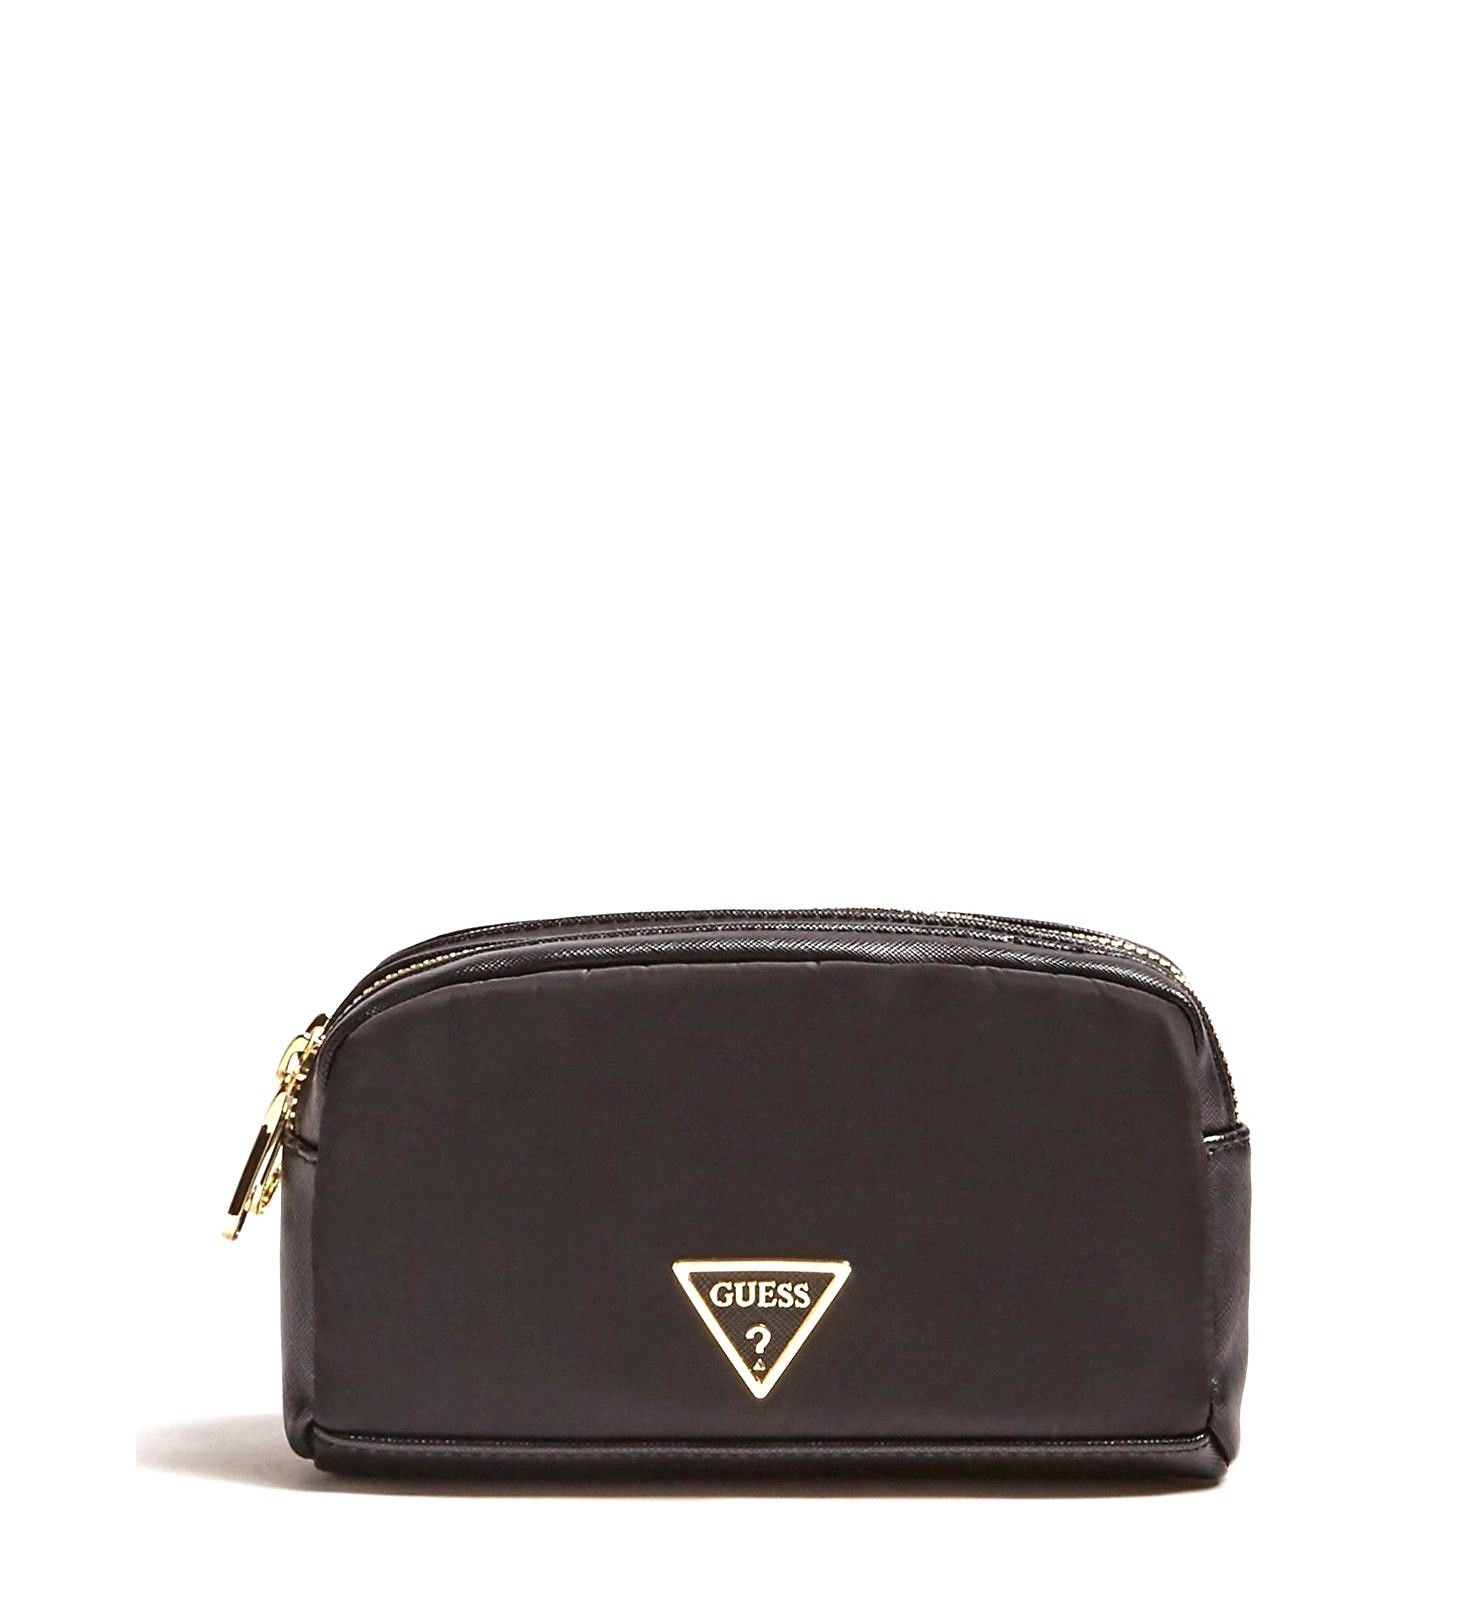 BORSA BORSE BEAUTY DONNA GUESS ORIGINALE PWDIDIP8308 ECO PELLE A/I 2018/19 NEW